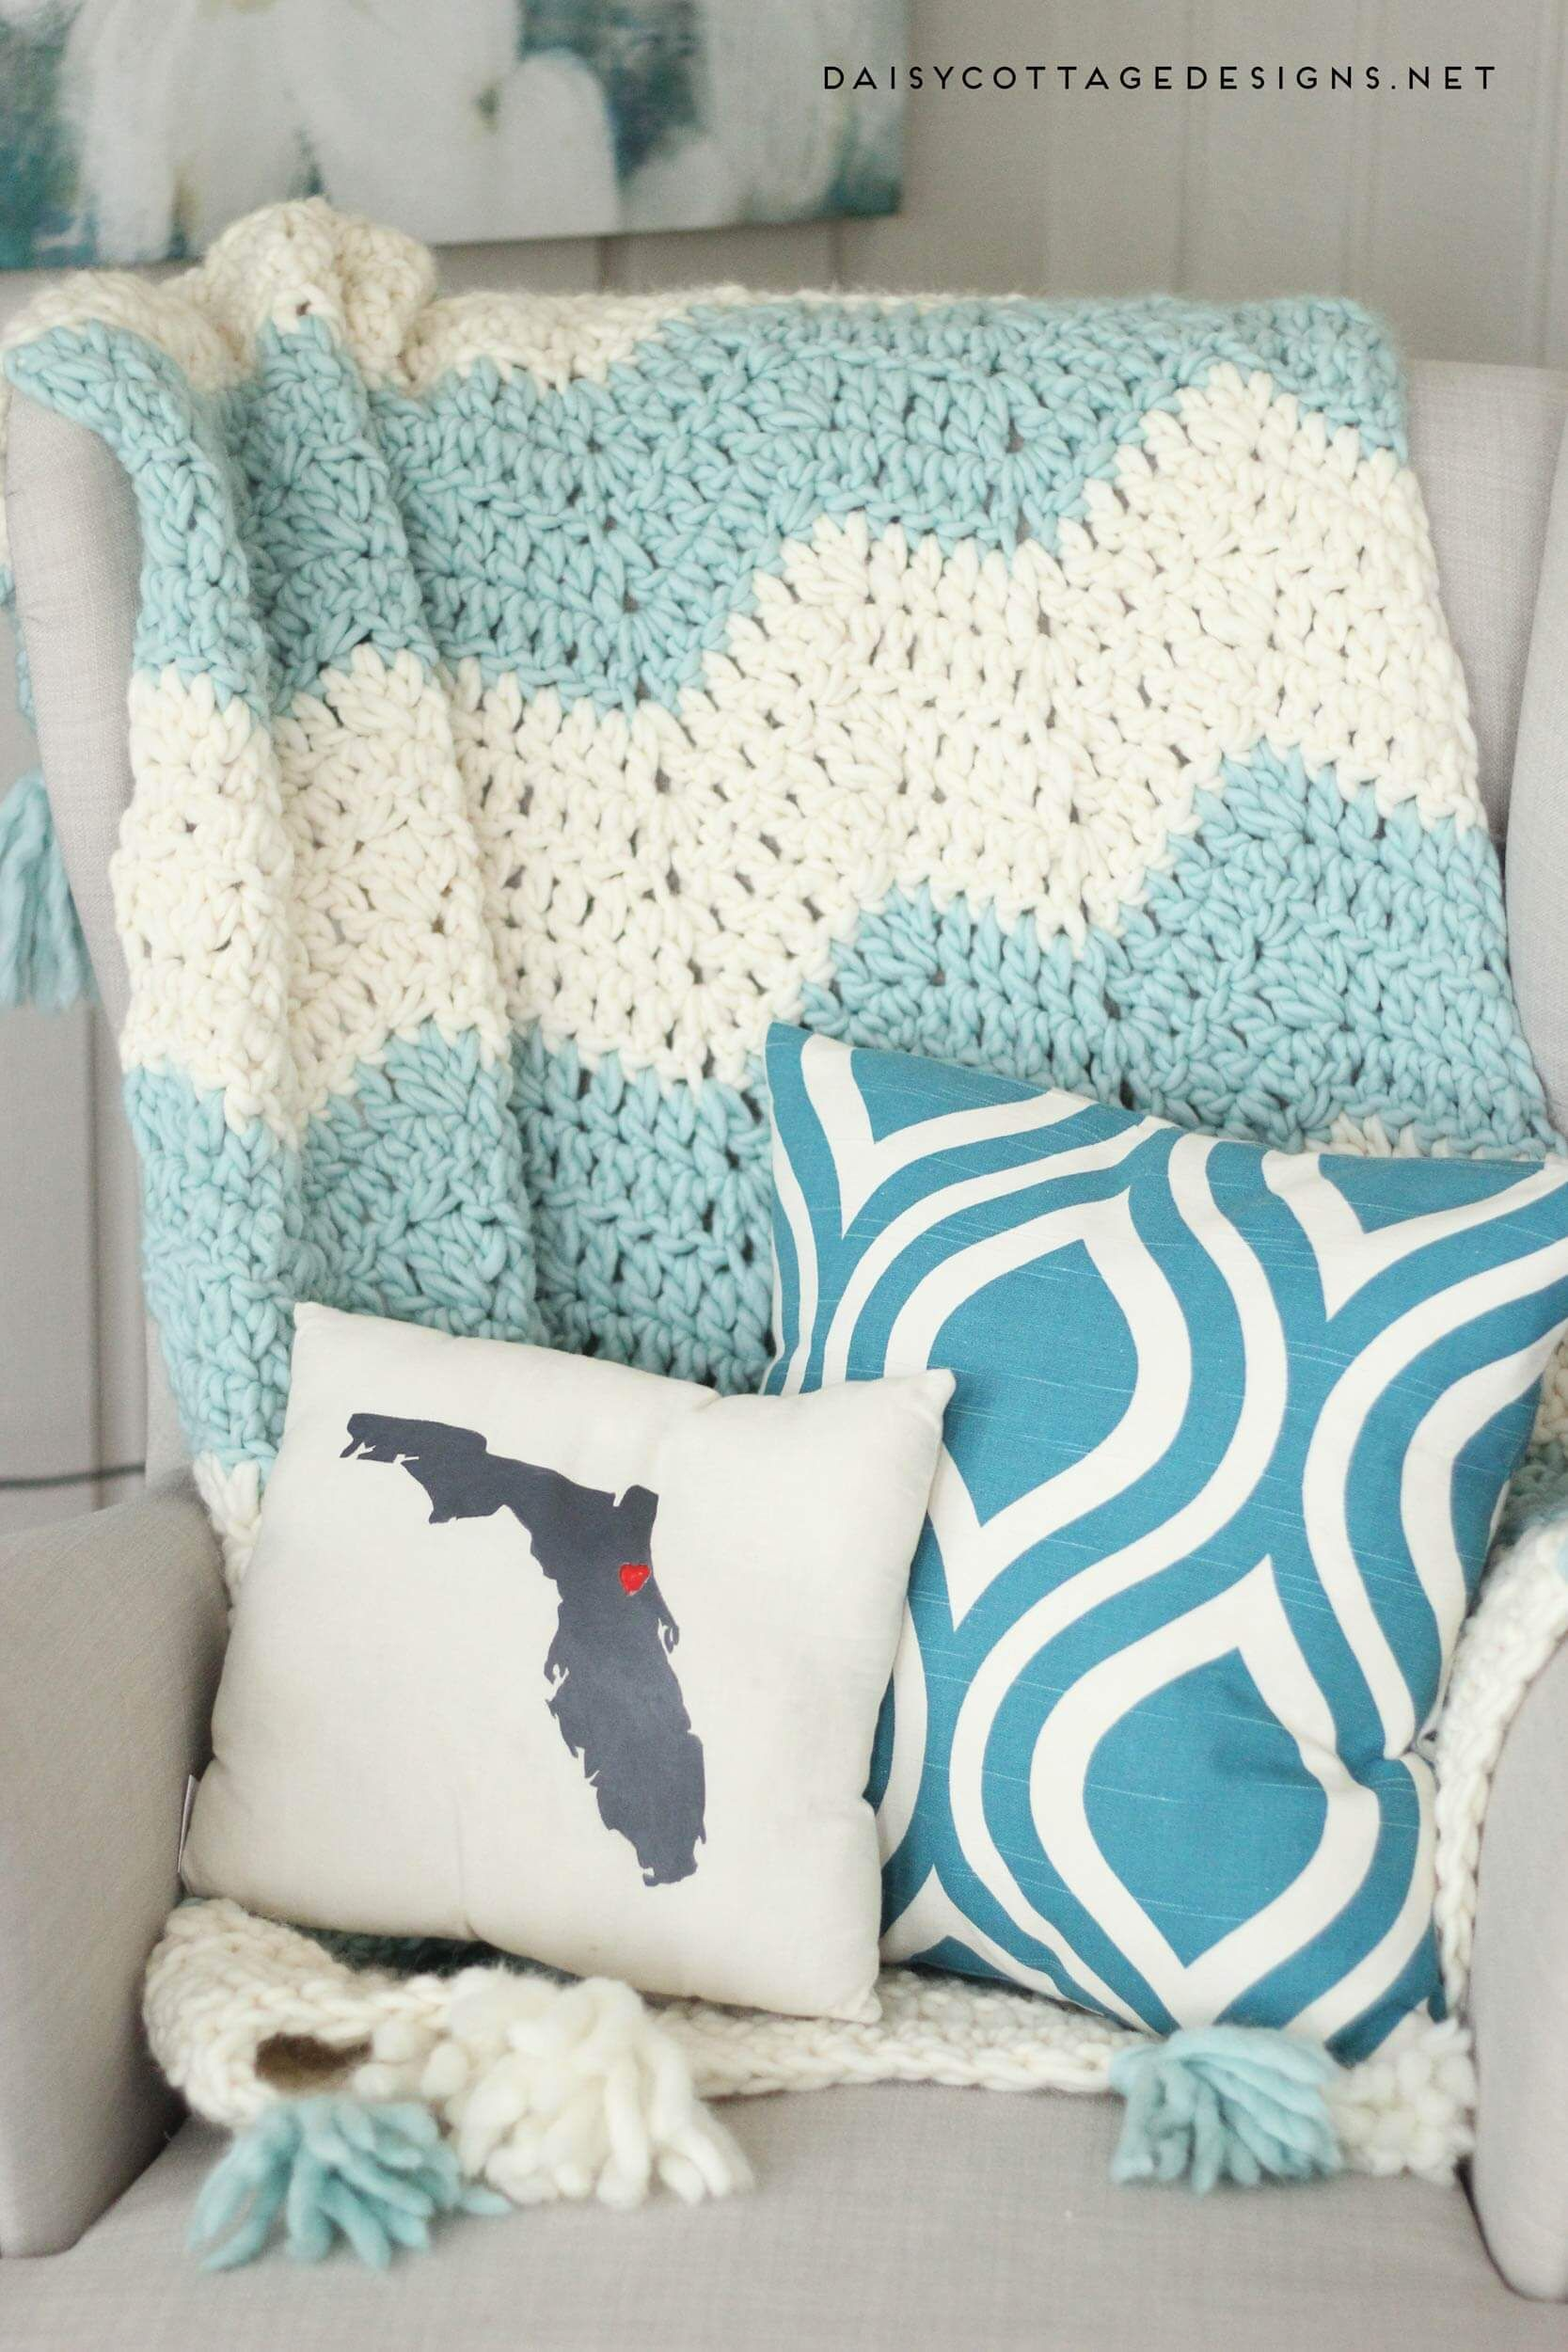 Chunky Chevron Crochet Blanket With Tassels Beautiful And Easy To